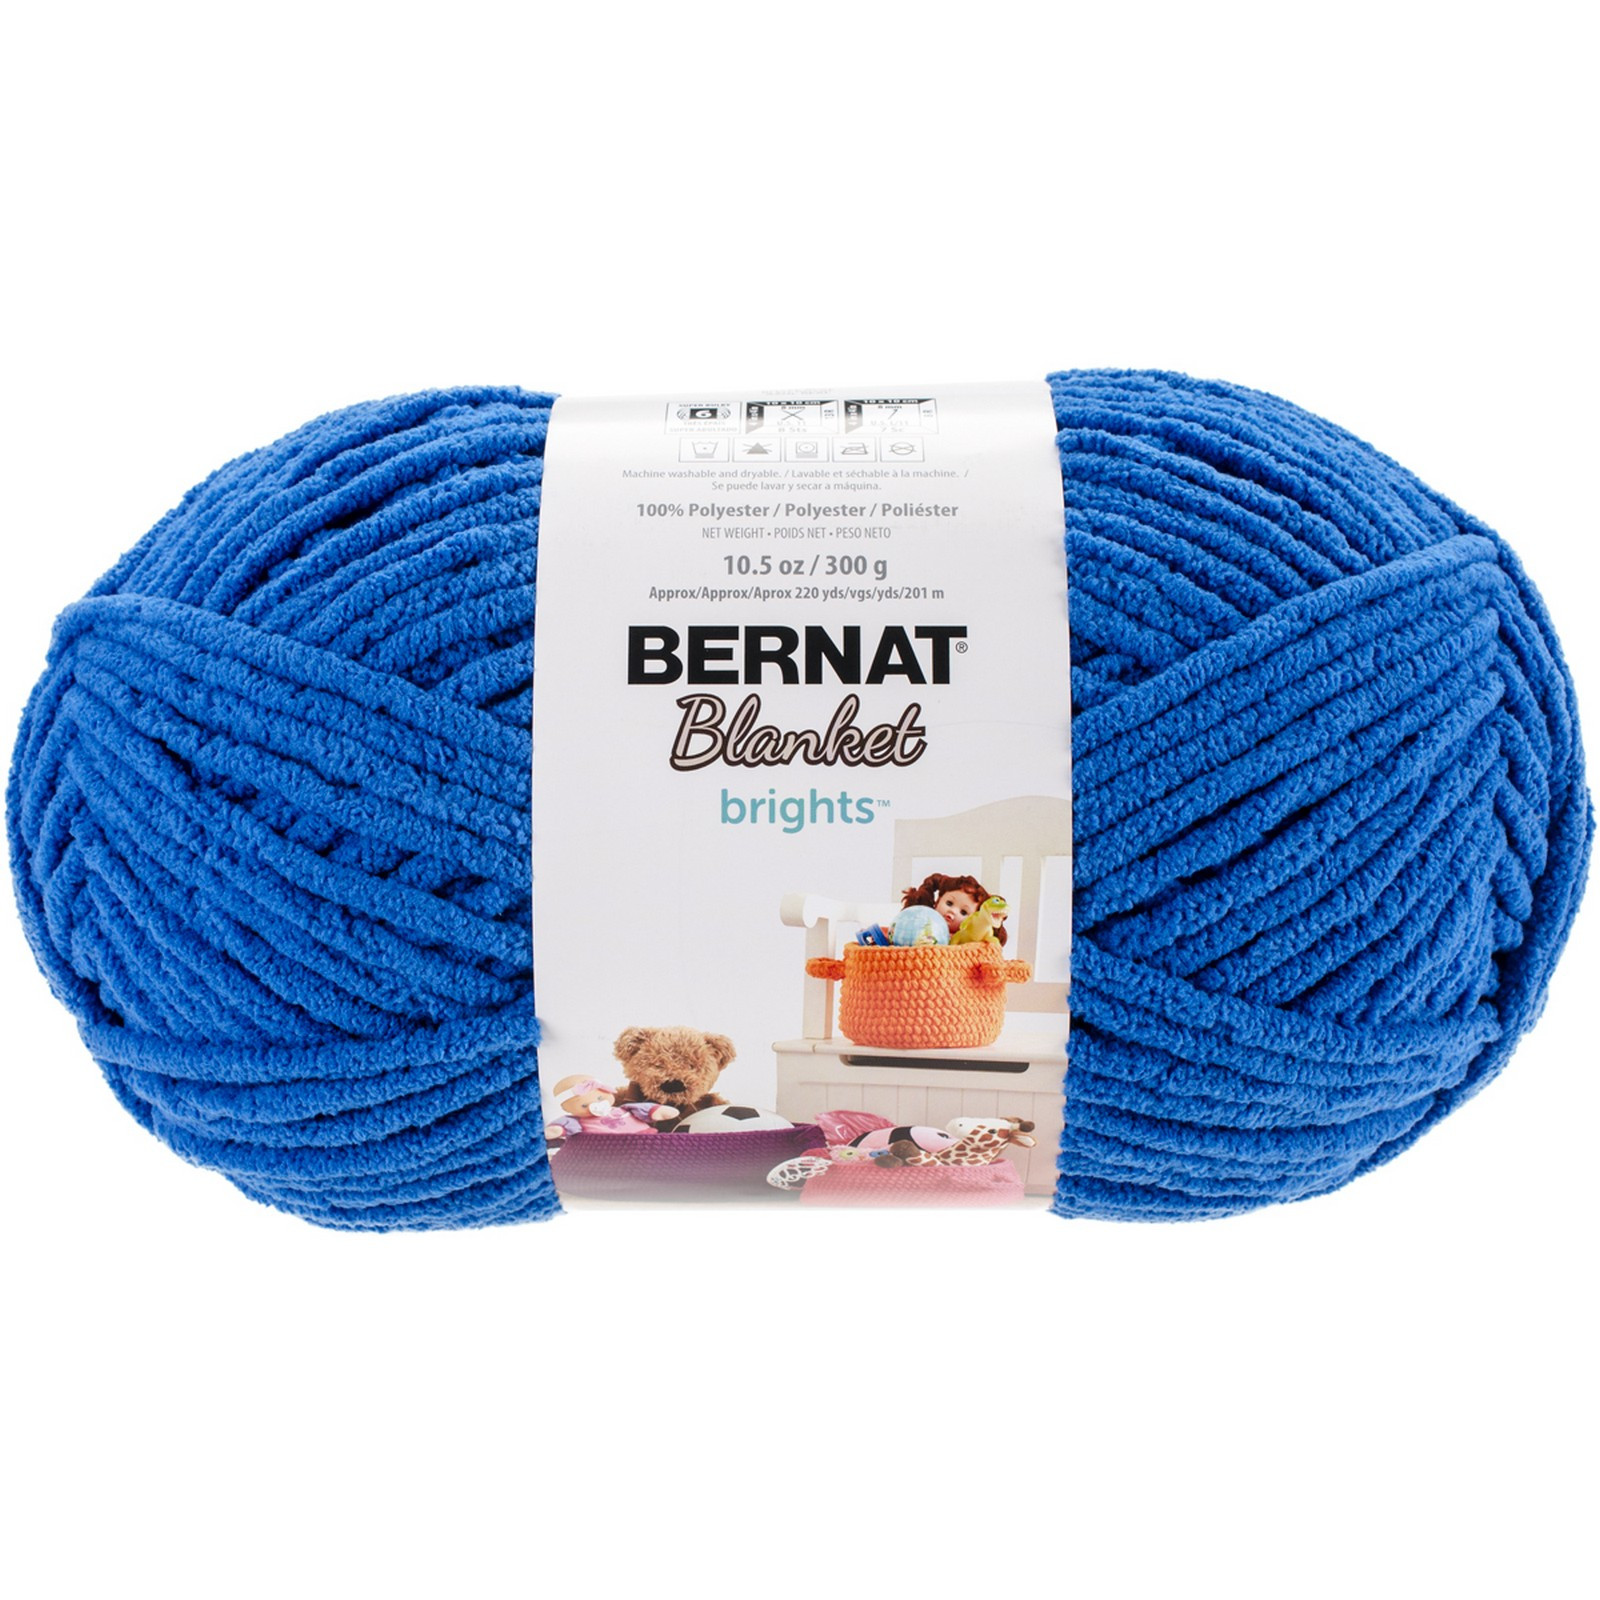 Bernat Blanket Brights Big Ball Yarn Royal Blue